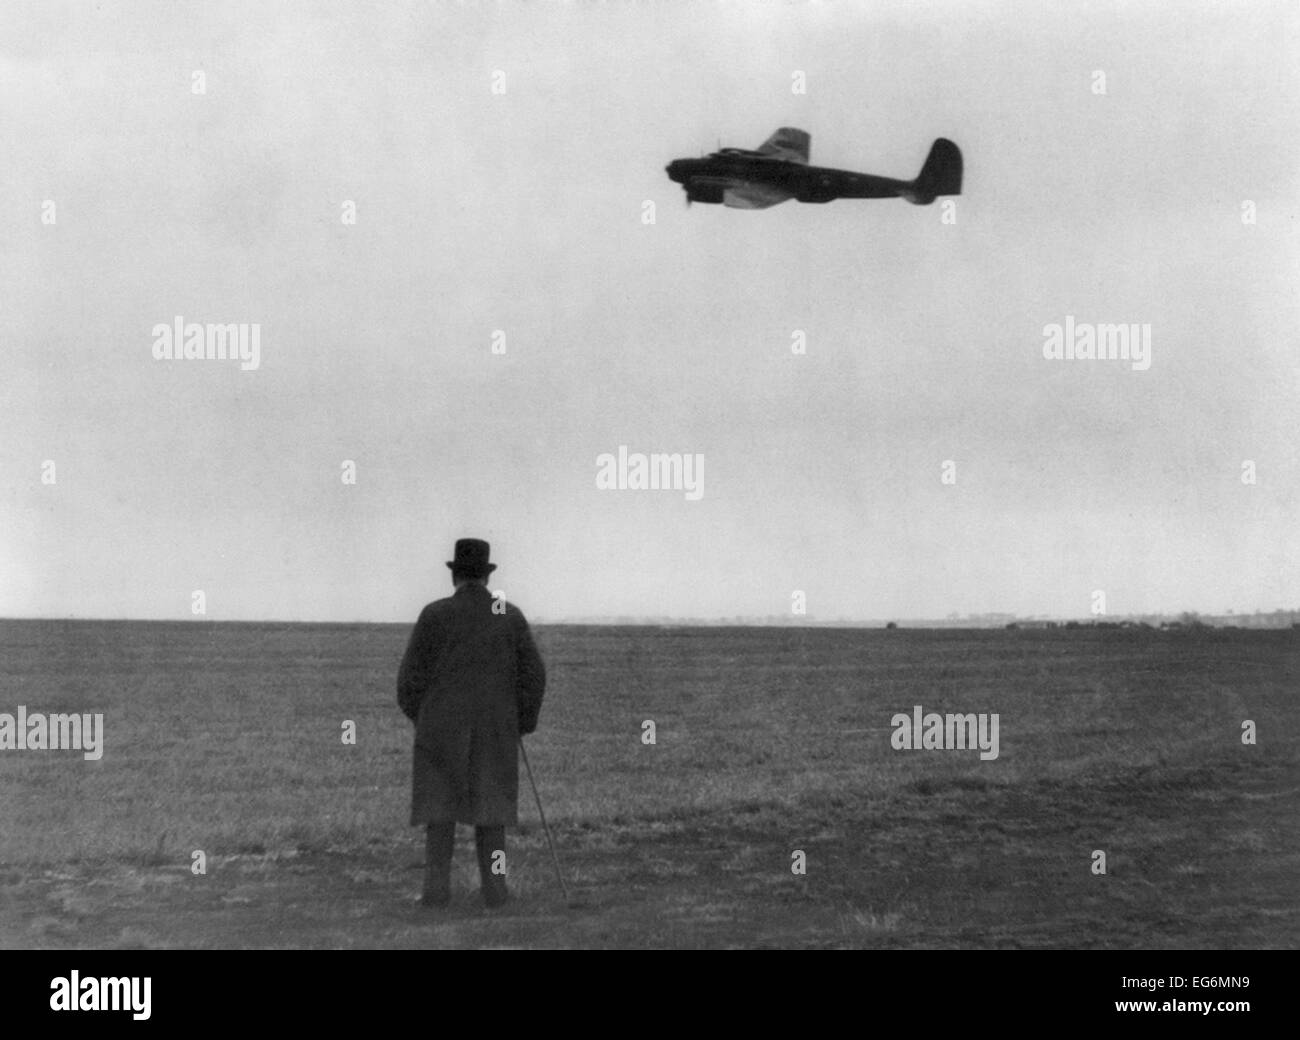 Winston Churchill, photographed from behind, watching B-17 'Flying Fortress' in flight. July 1940. World War 2. Stock Photo